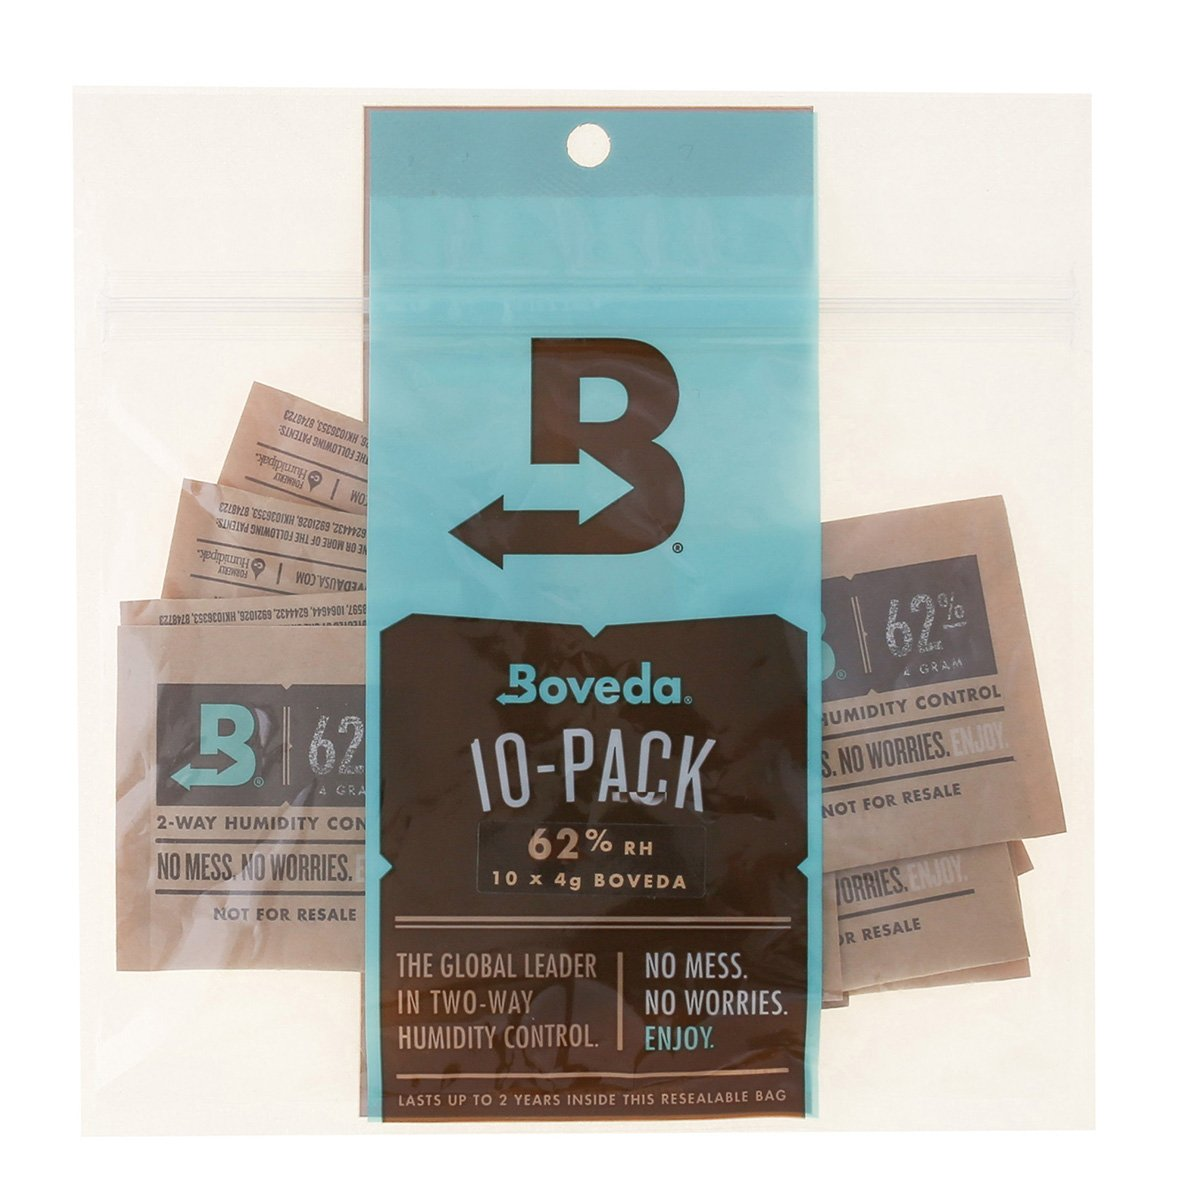 Boveda 62 Percent RH 2-Way Humidity Control, 4 gram - 10 Pack